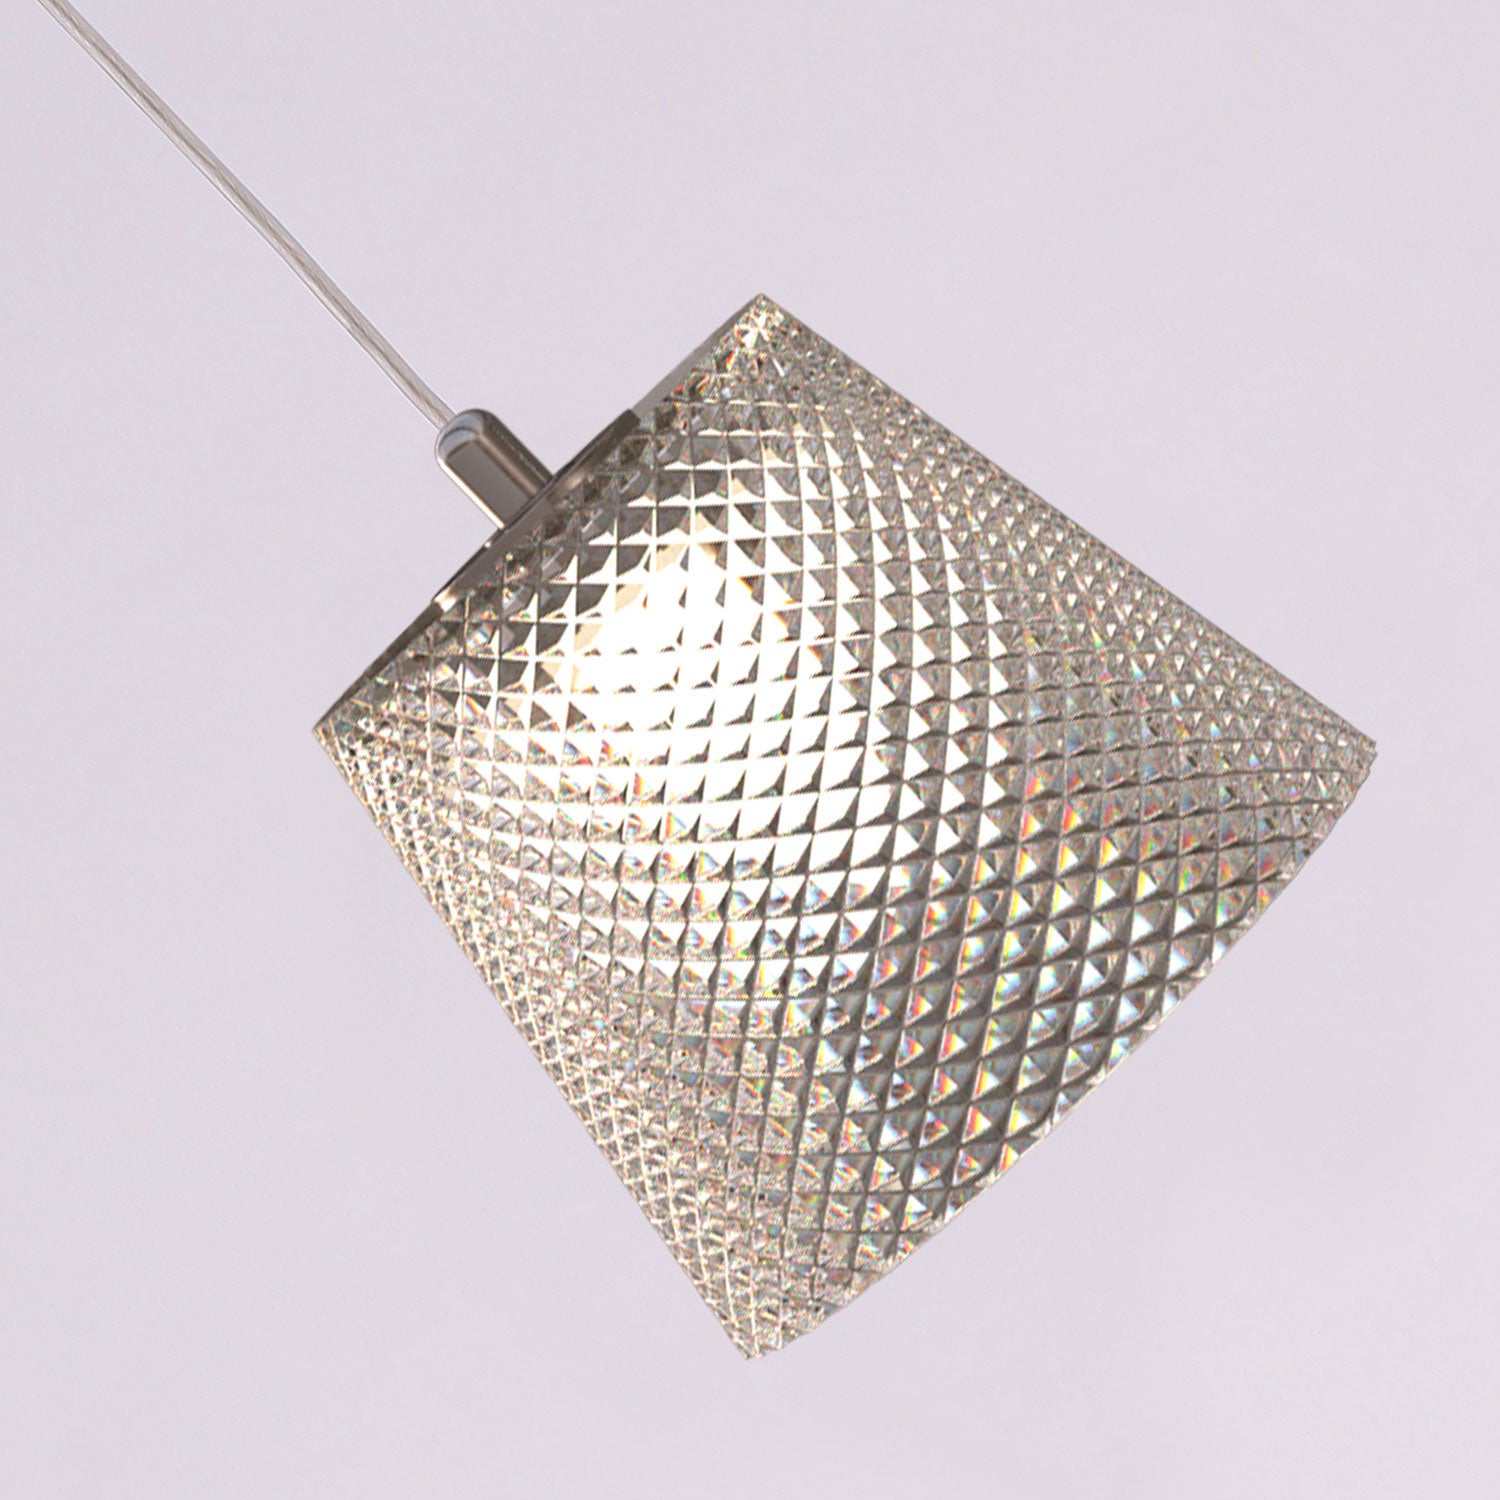 Orion 9-light LED mini pendant